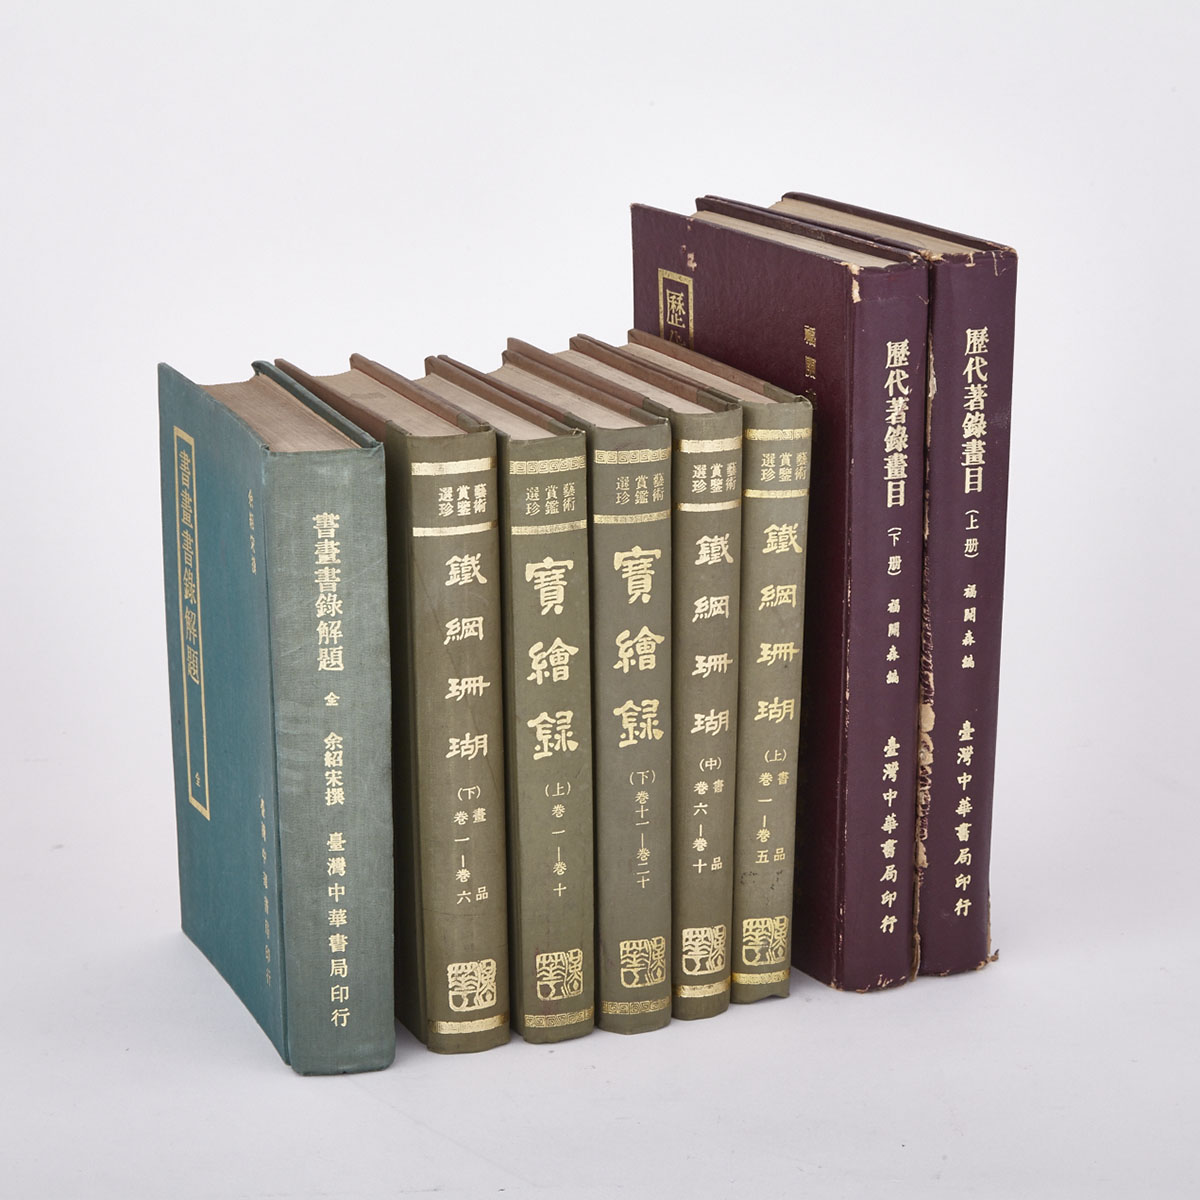 8 Volumes on Chinese Literature and Drawing